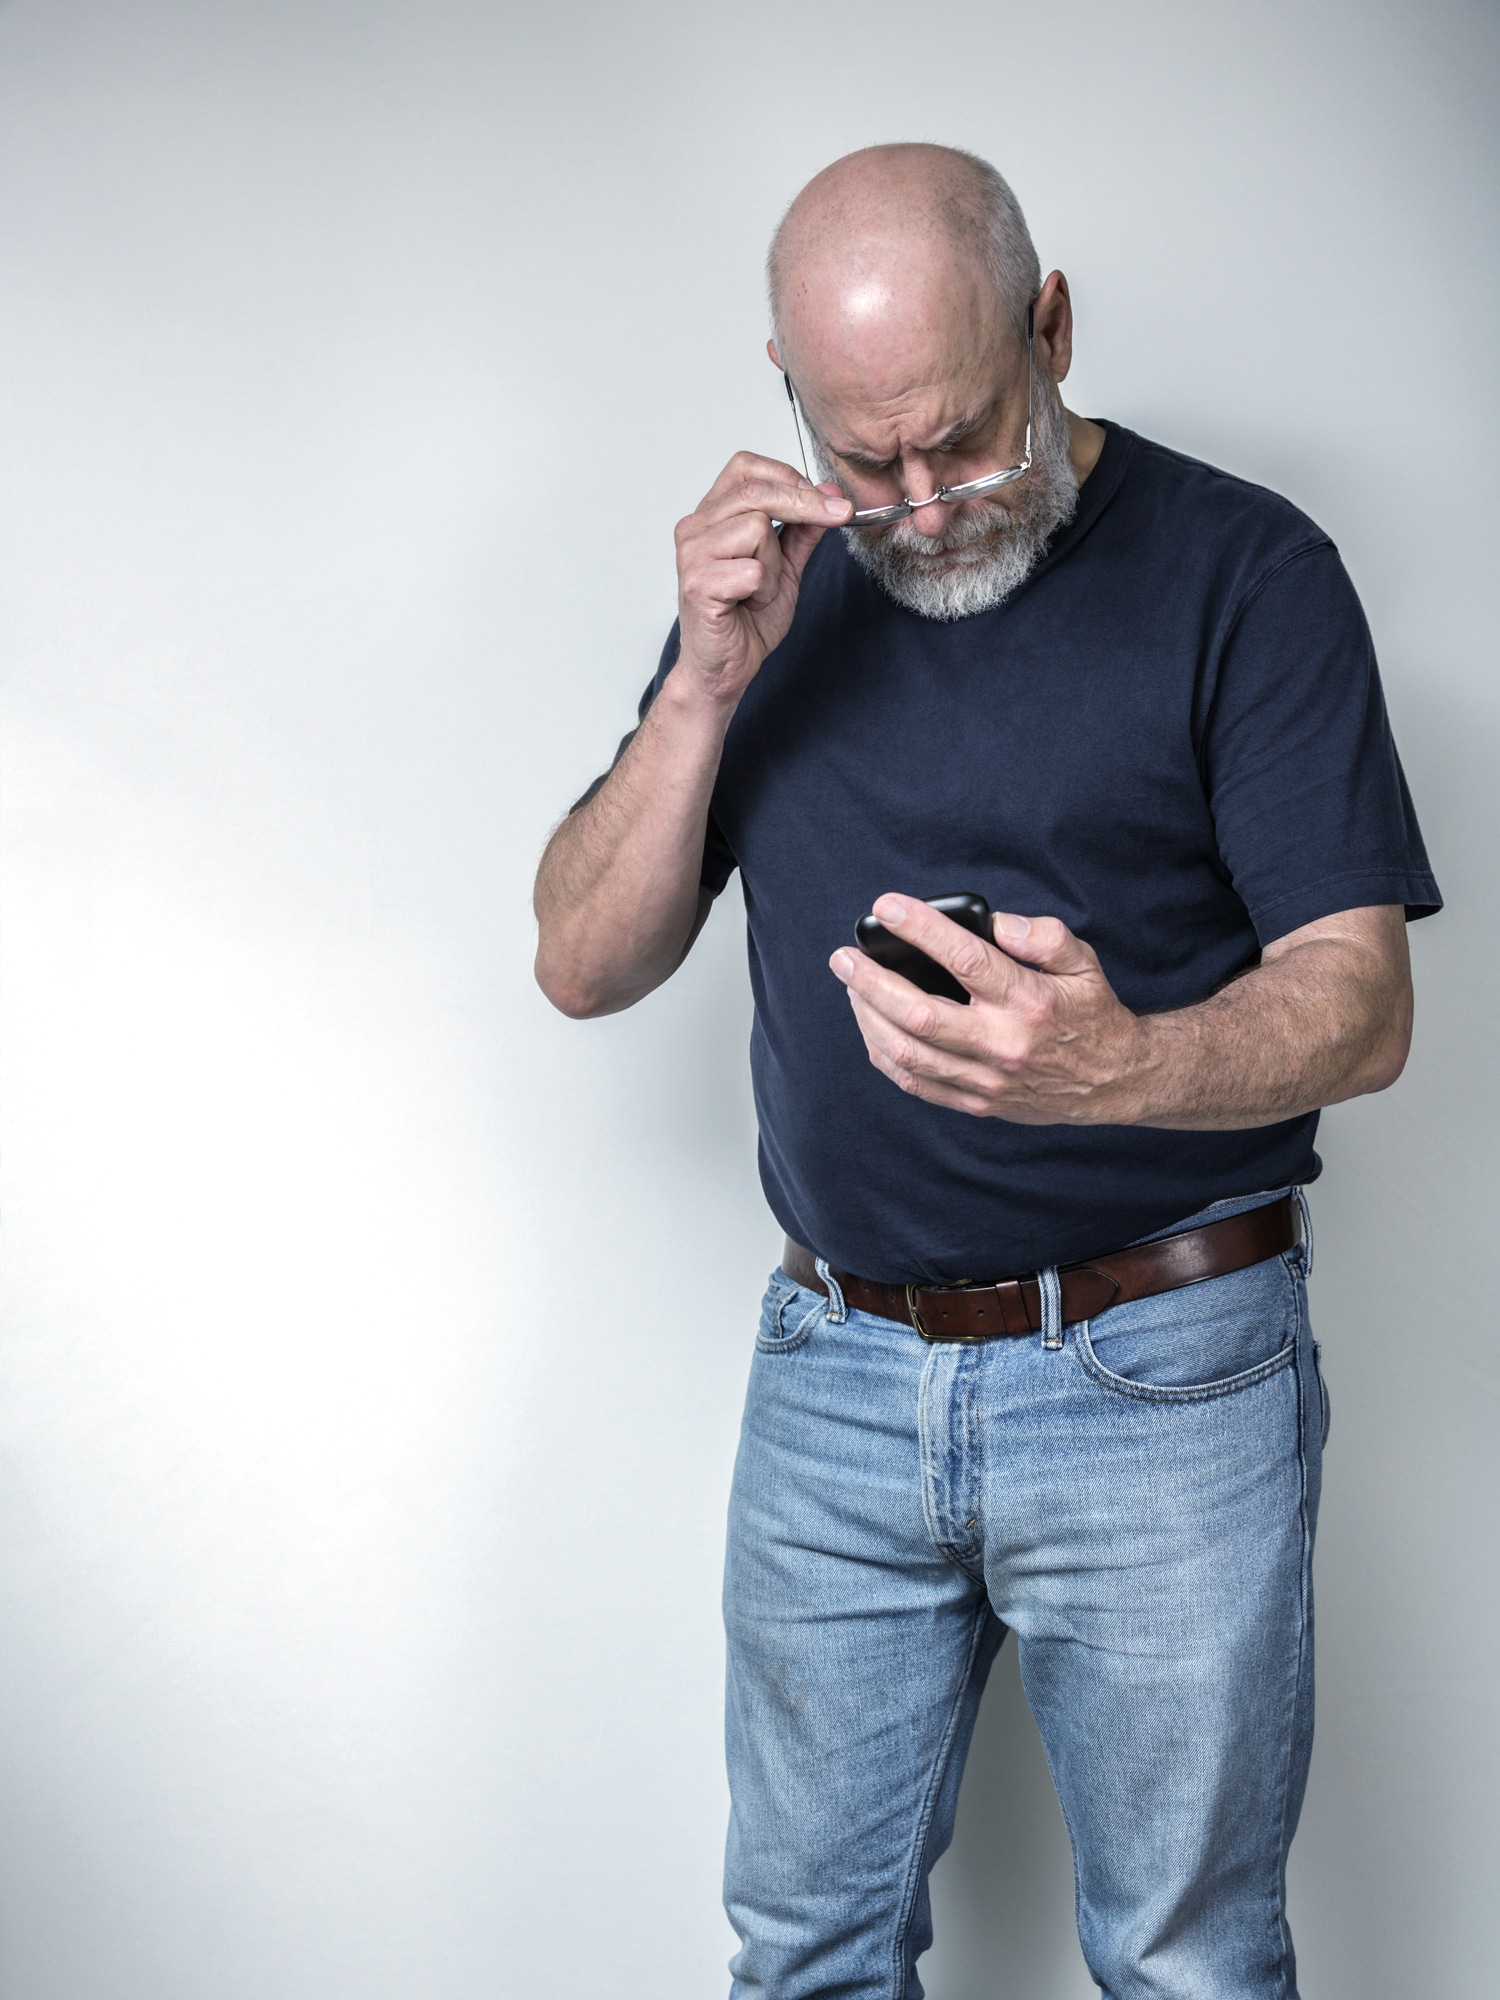 A senior adult man with poor eyesight is holding his eyeglasses away from his face as he looks down at the smartphone in his hands trying to read a text message. He is wearing a dark short sleeve t-shirt and blue jeans. He has a gray beard and mustache. Three quarter length on a grey background.